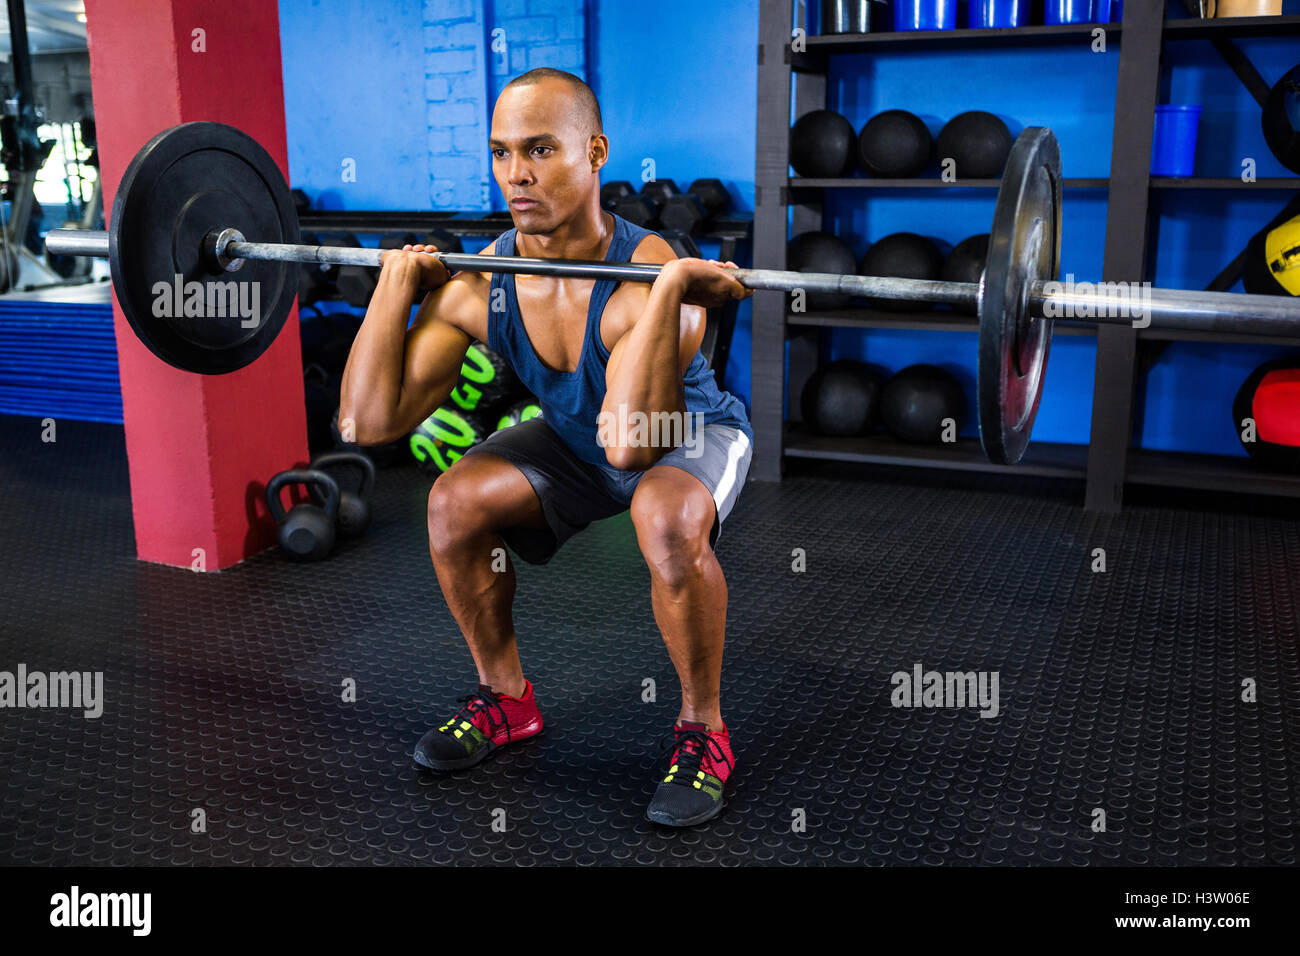 Male athlete weightlifting in fitness studio - Stock Image